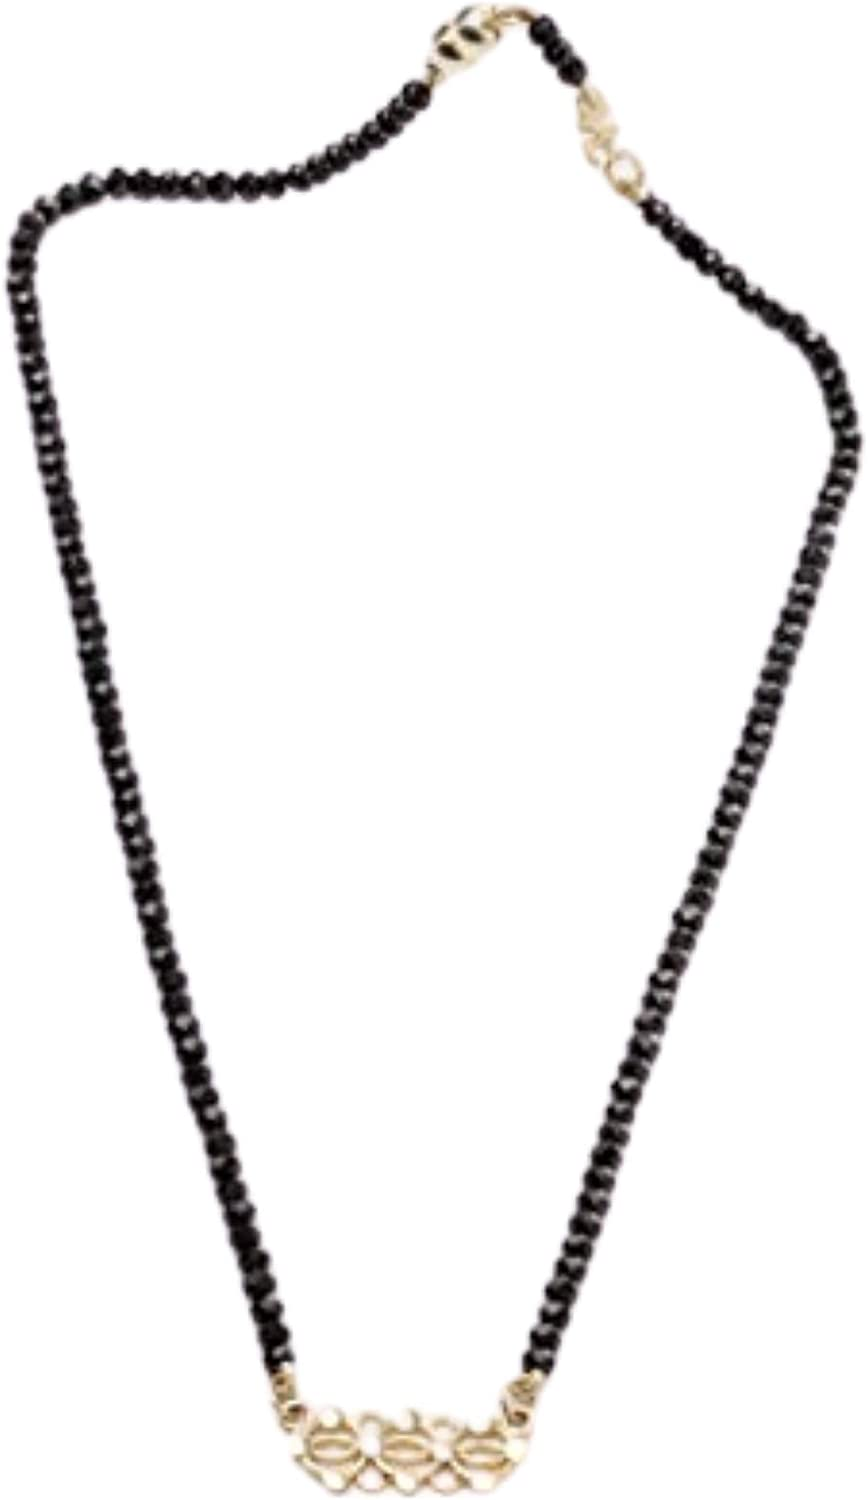 Natalie Feder's Black Spinel New products world's highest quality popular Gemstone Purchase Nec Silver Plated Gold and